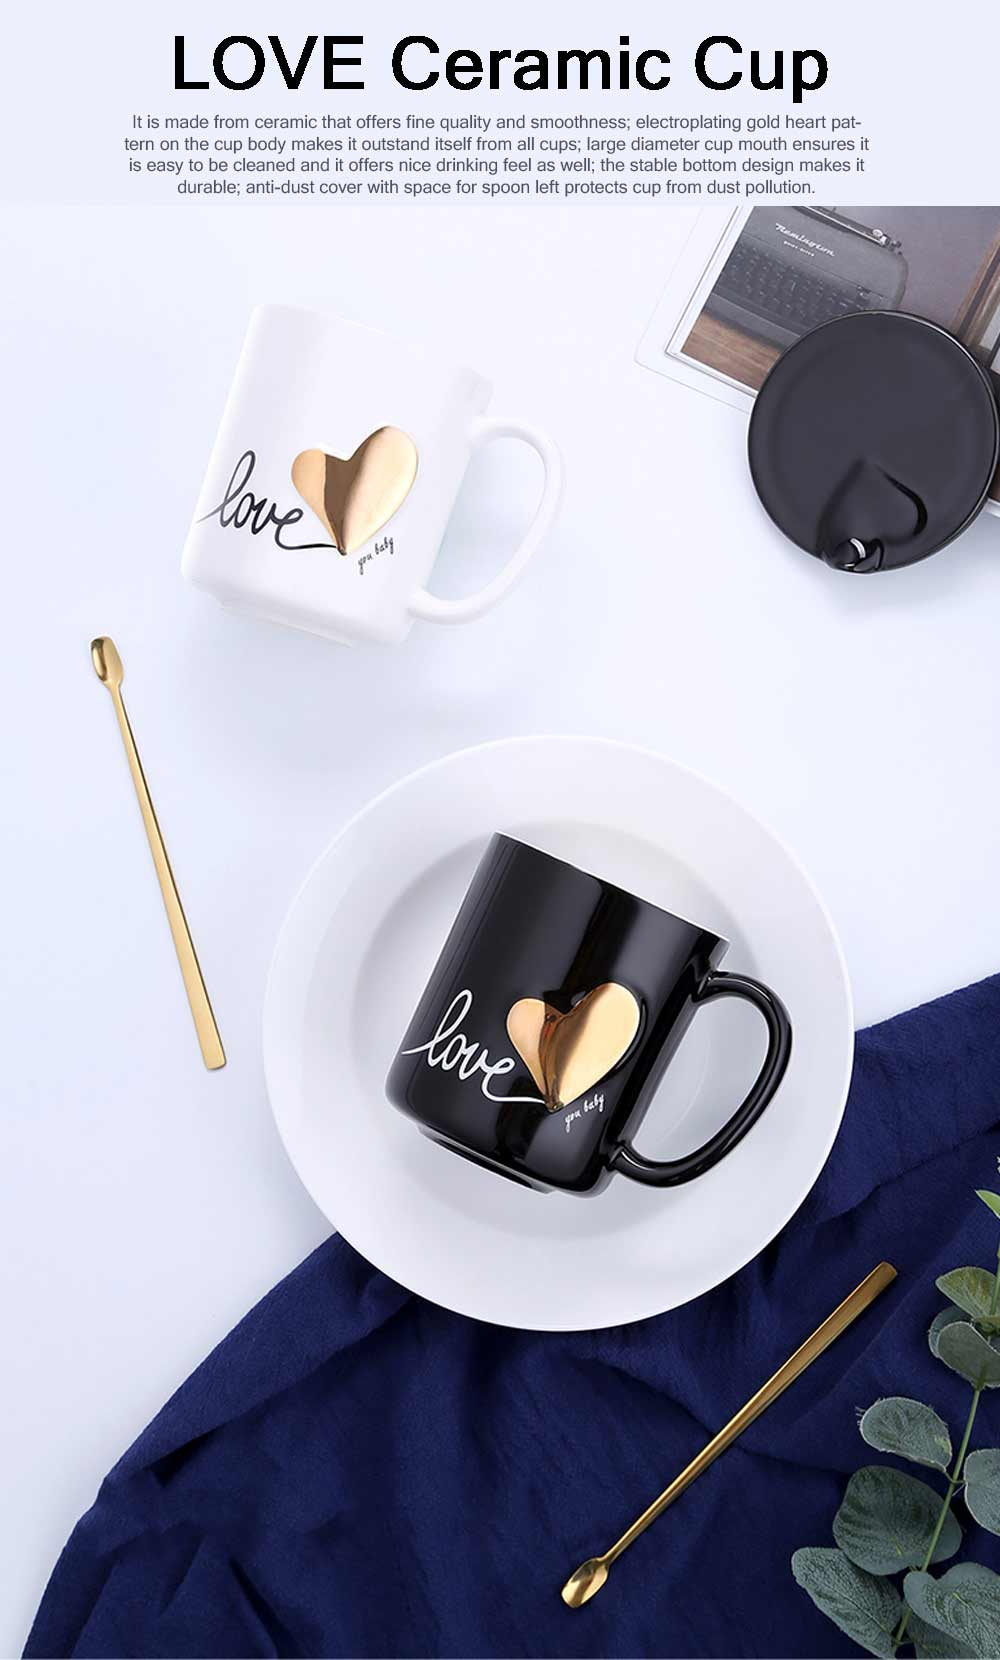 Cute Simple Ceramic Mug with Cover and Spoon, Dishwasher safe, Gifts for Lover 6